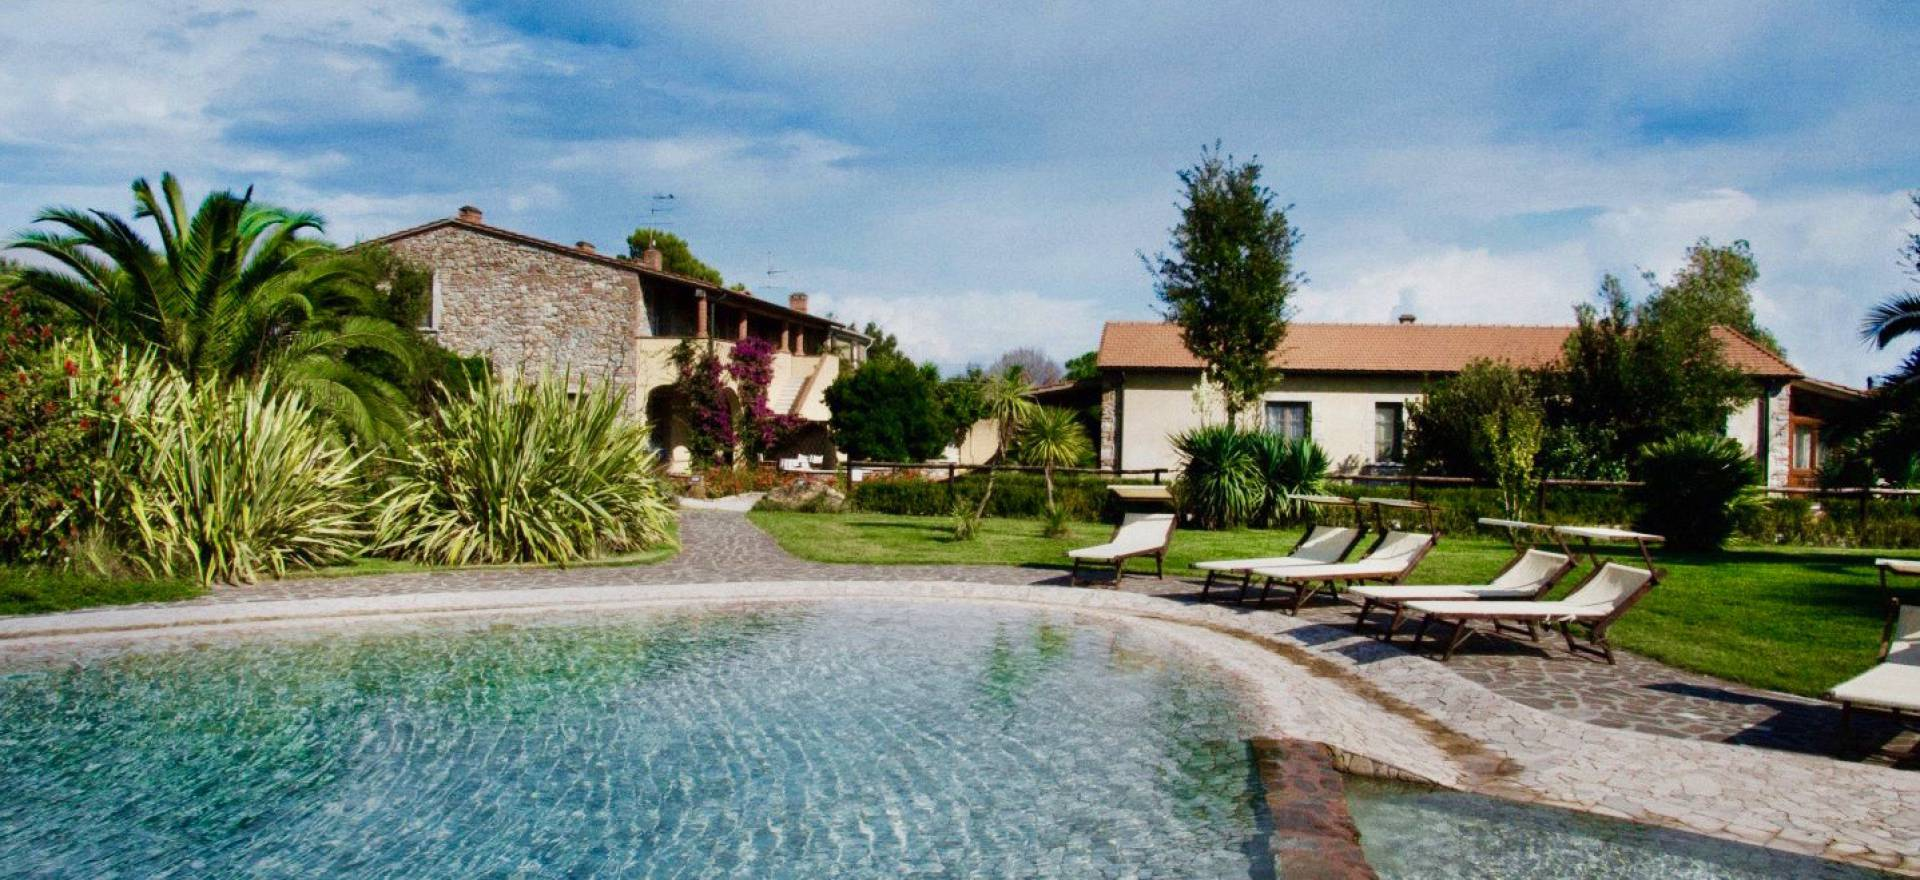 Agriturismo Tuscany Agriturismo with restaurant near the Tuscan coast